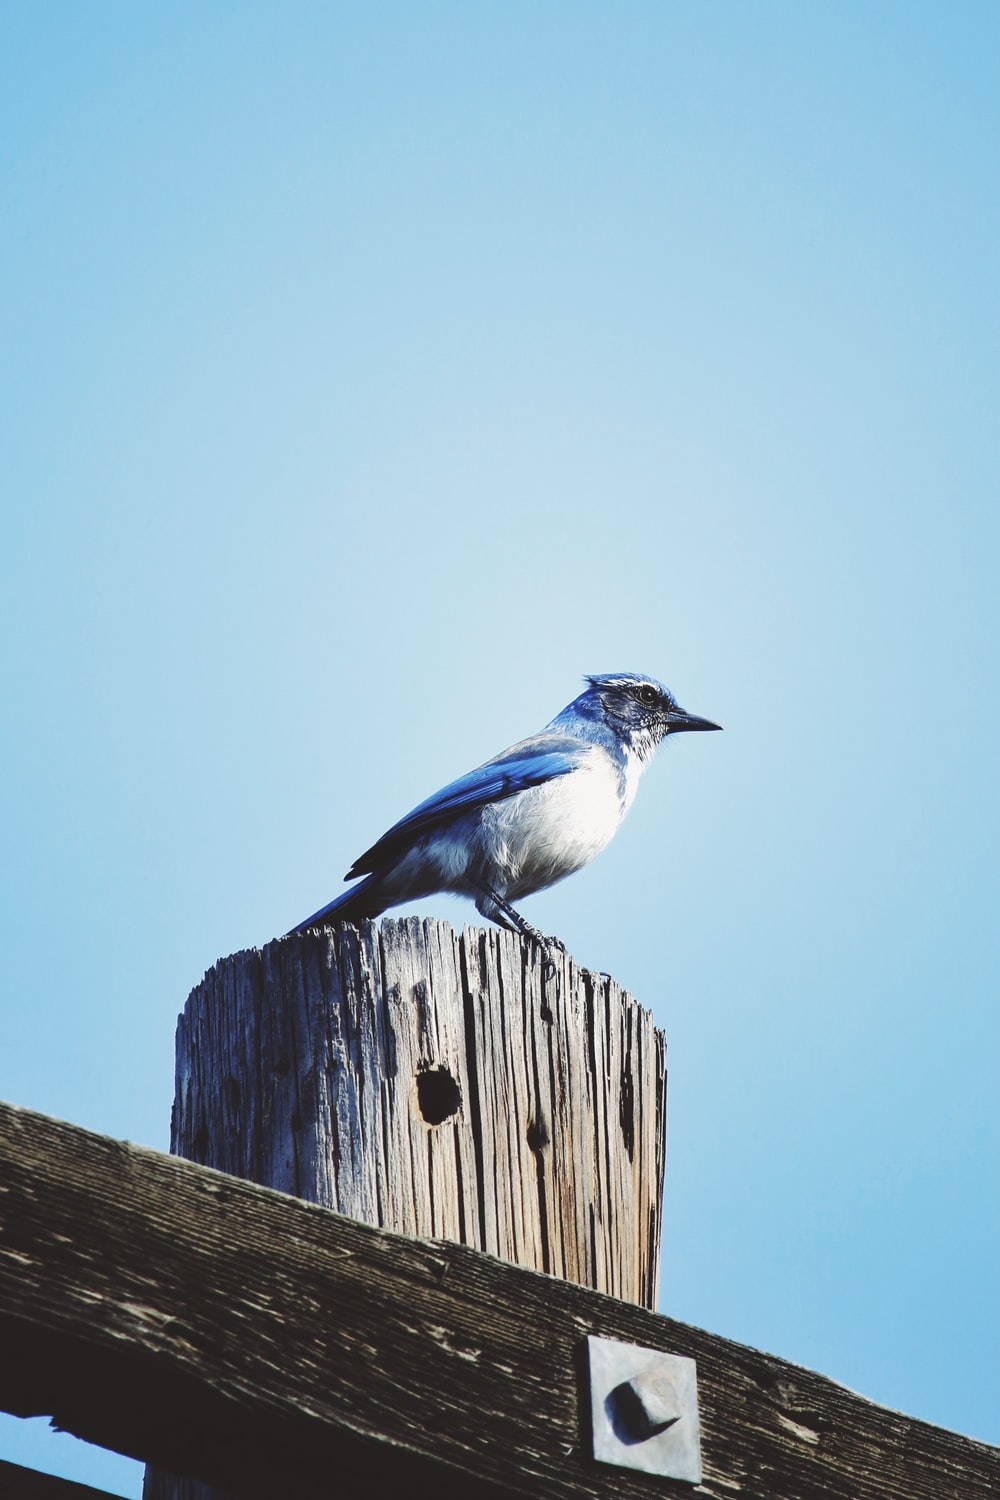 white and blue bird on brown wooden fence during daytime